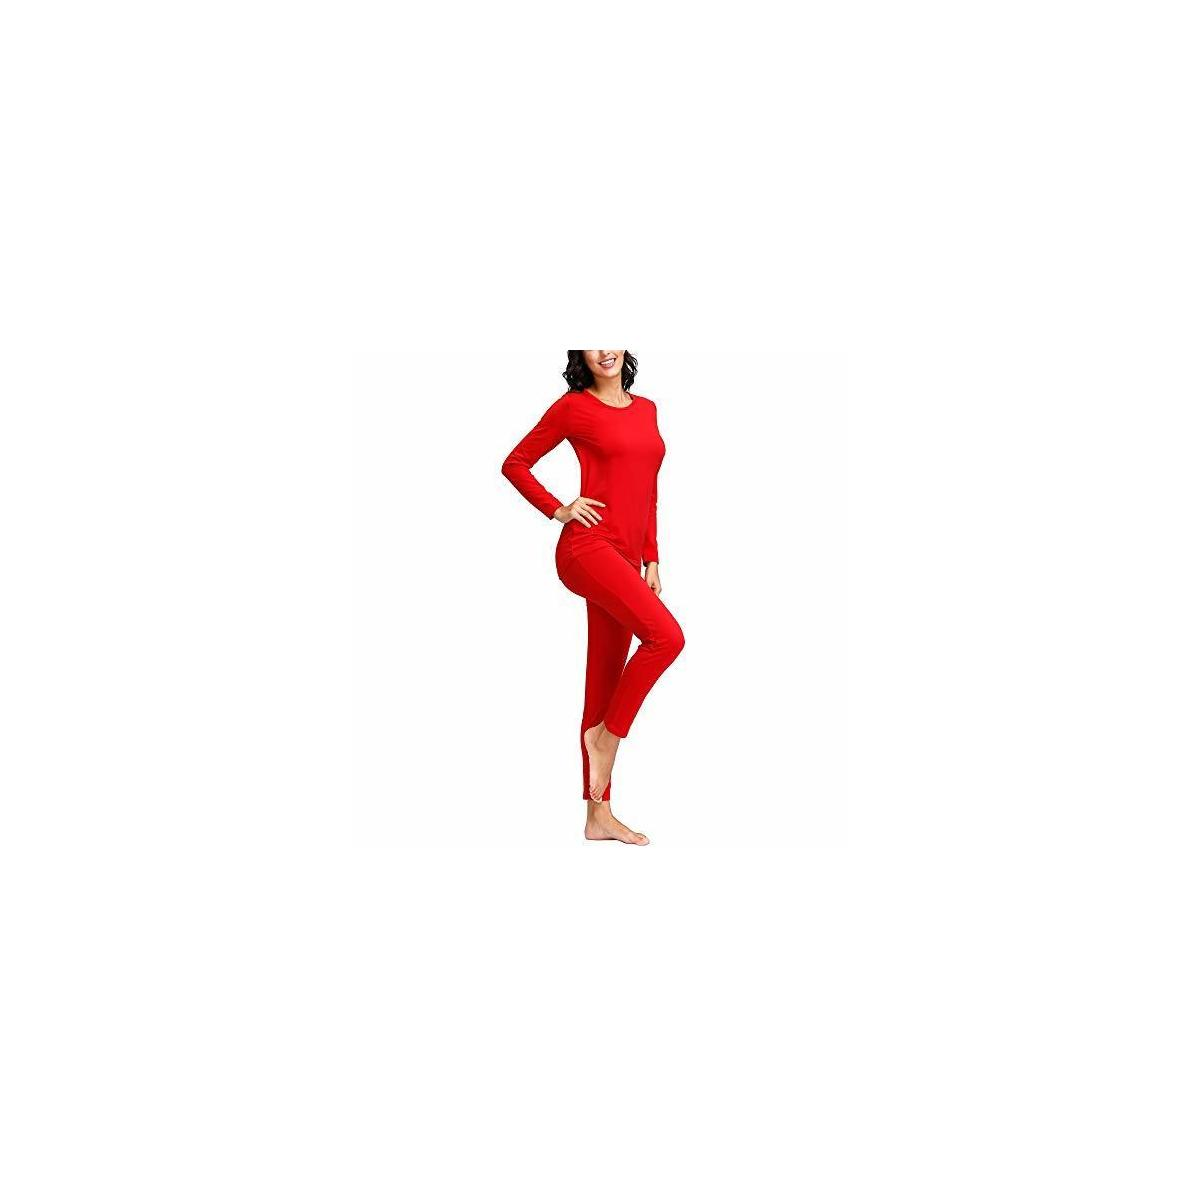 DOC Breathable Premium Quality Women Thermal Underwear Set - All Sizes and Colors